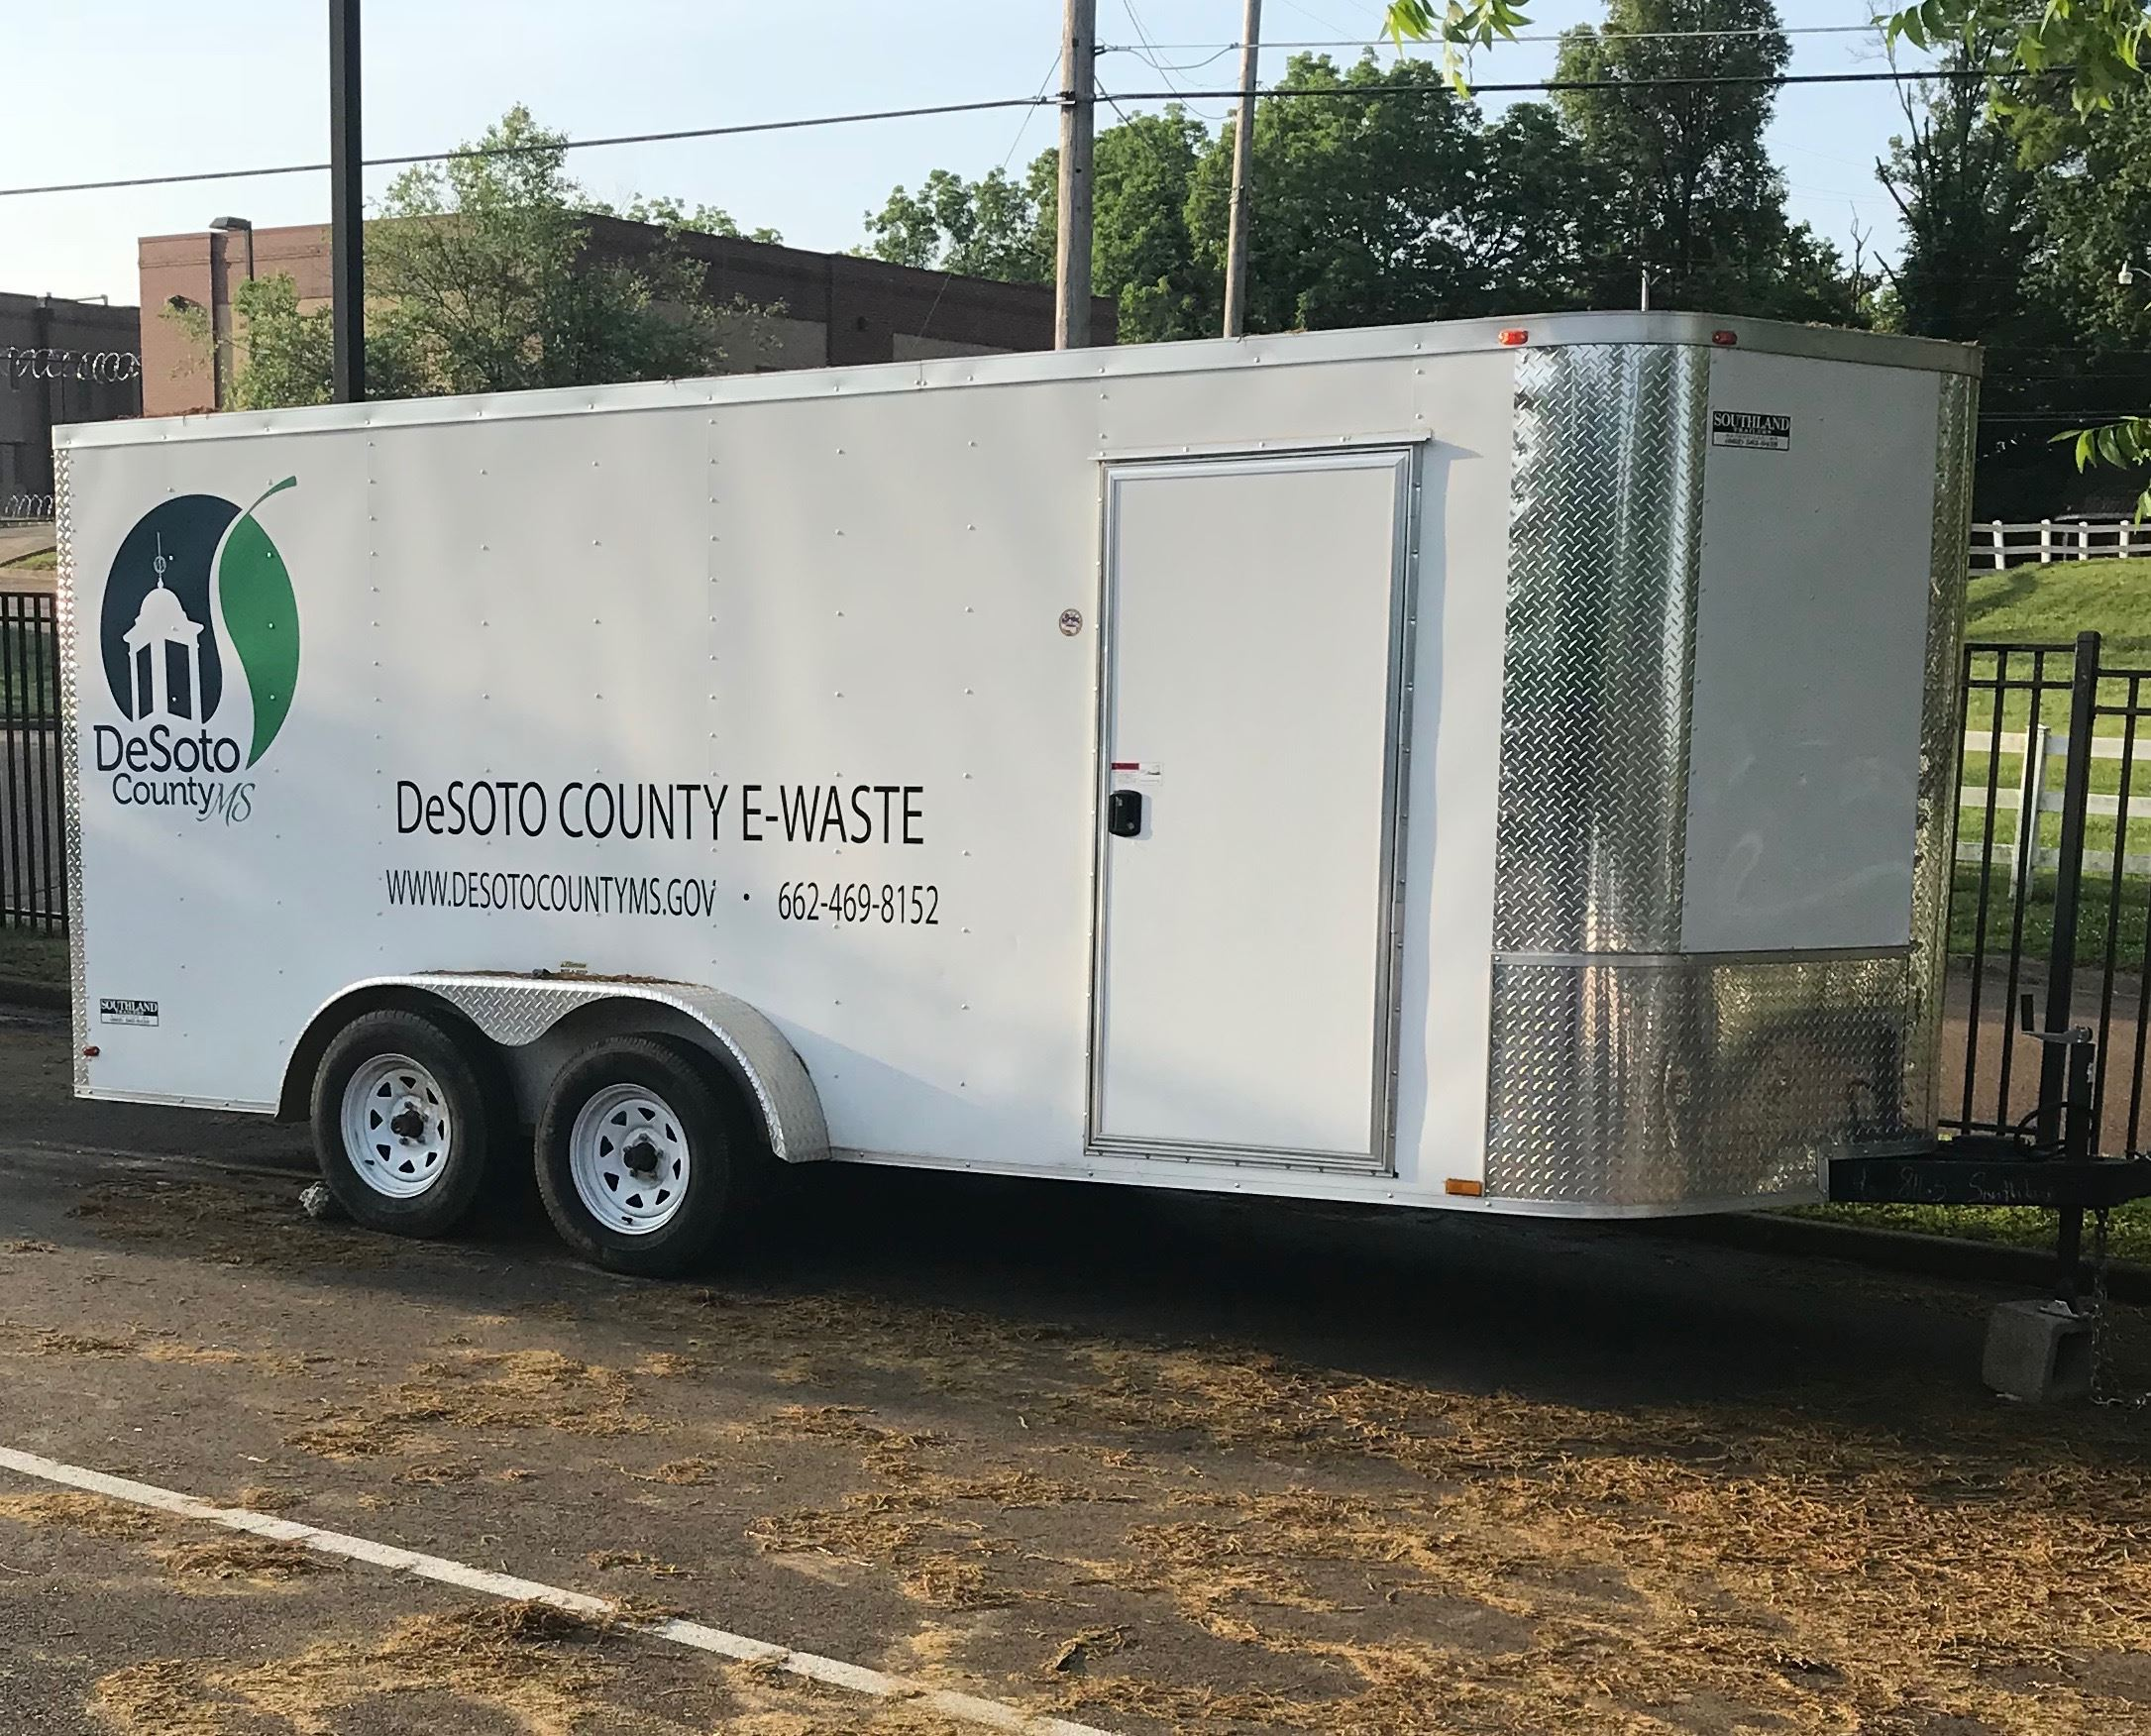 E-Waste Recycling Trailer